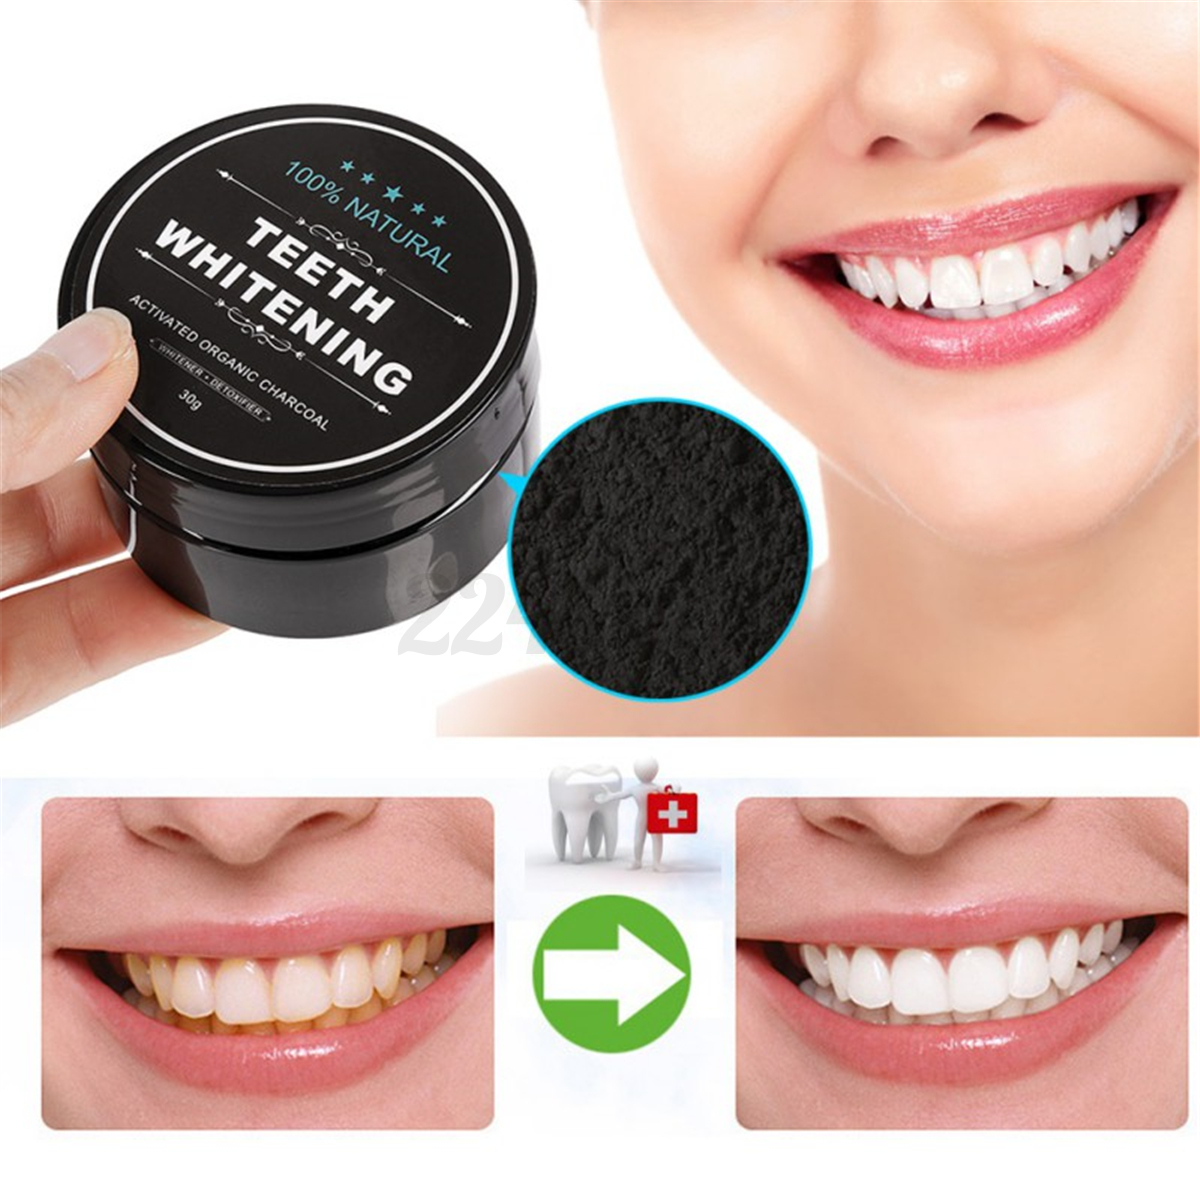 100 organic activated charcoal teeth whitening coconut shell powder carbon coco ebay. Black Bedroom Furniture Sets. Home Design Ideas